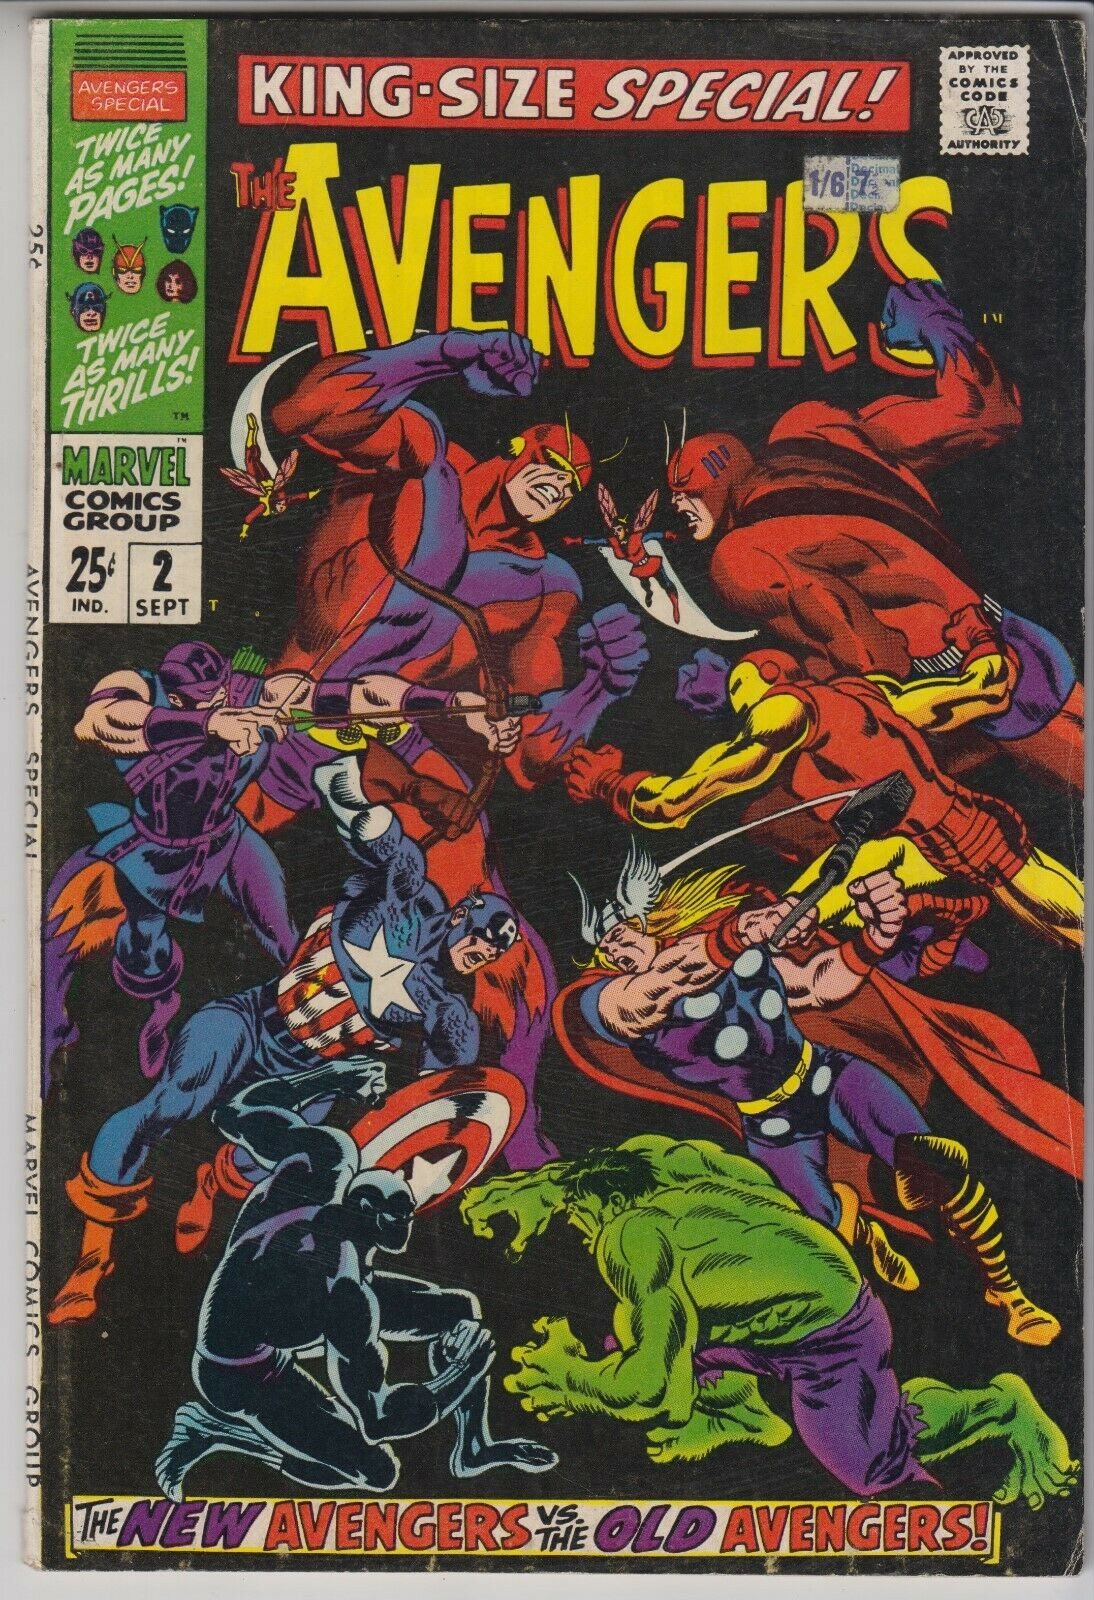 AVENGERS # 2  KING-SIZE SPECIAL  VG/FN  NEW AVENGERS VS OLD AVENGERS CENTS 1968